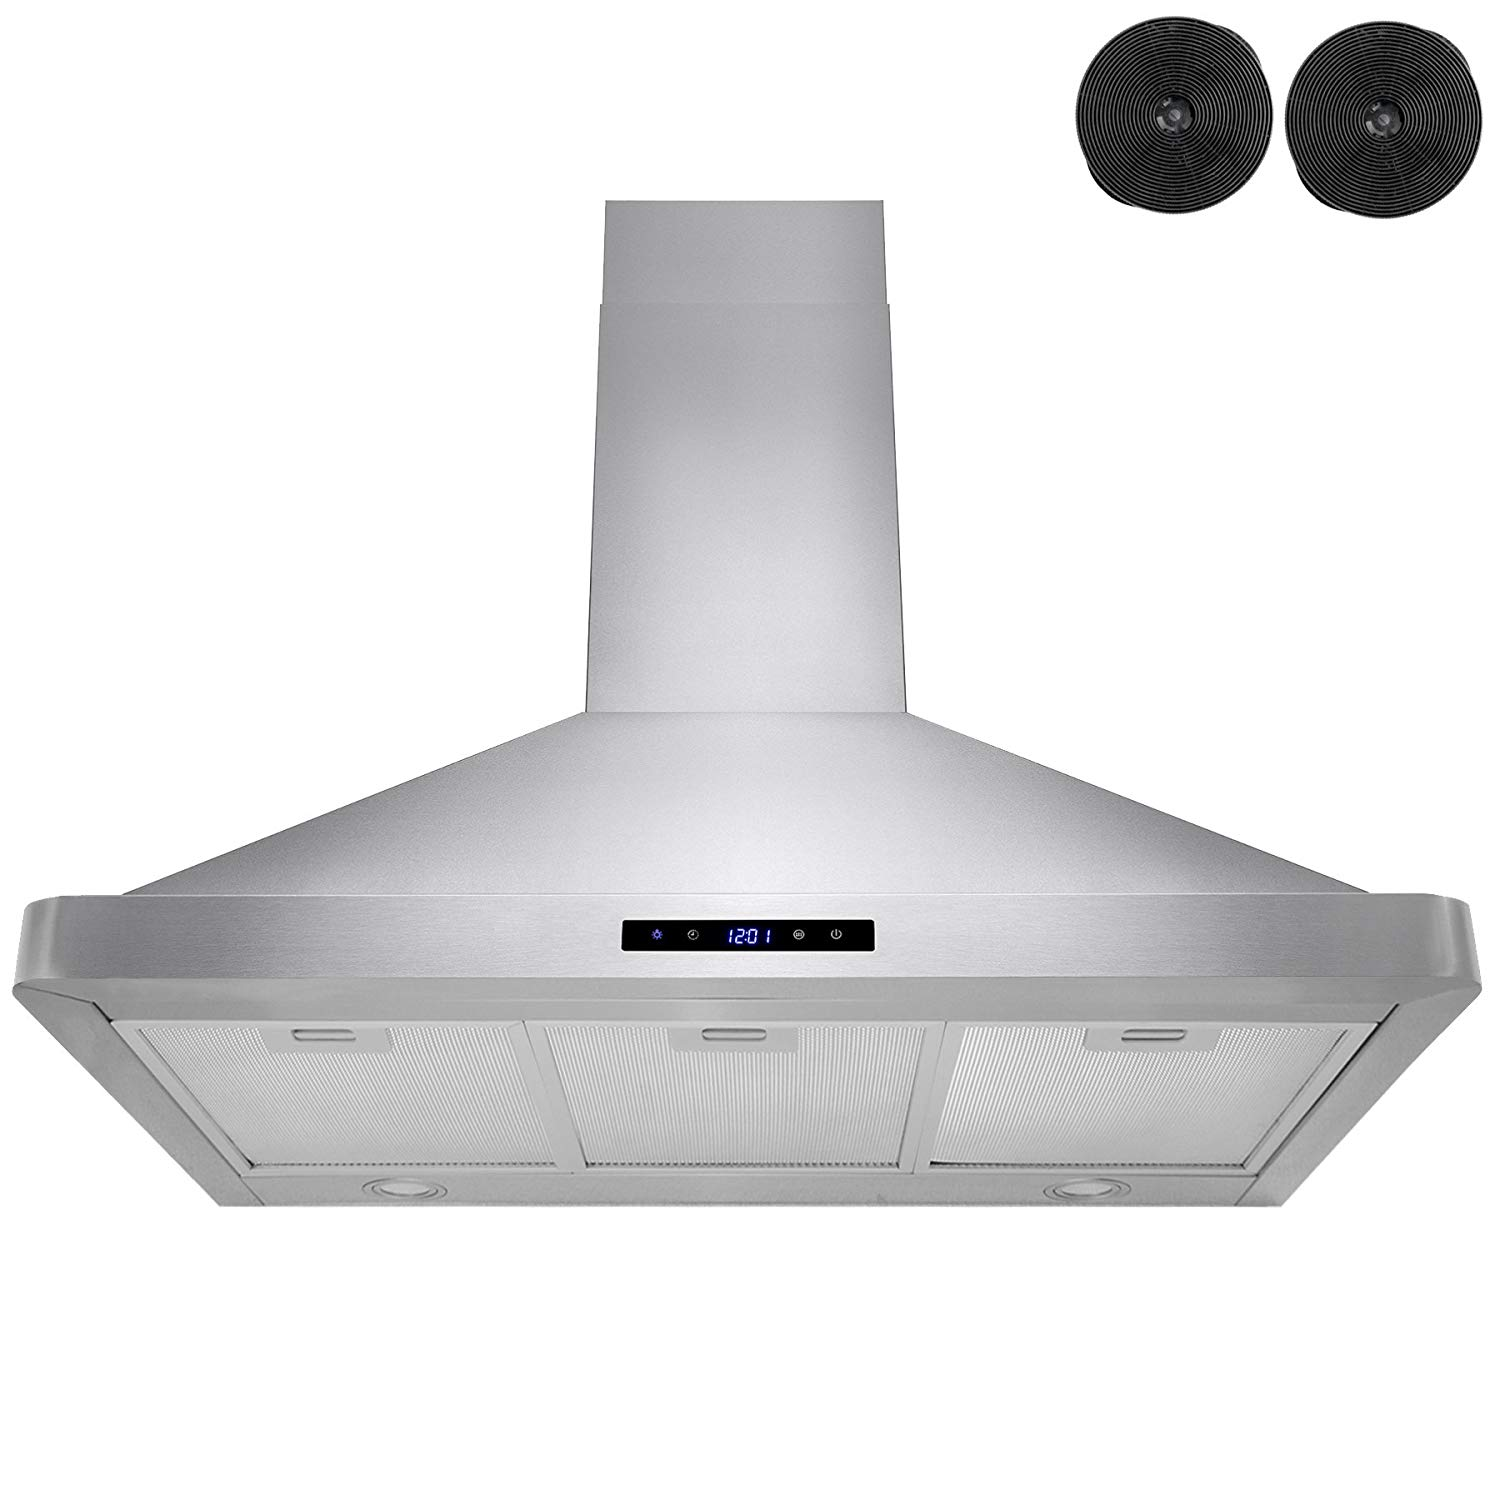 """FIREBIRD 36"""" Wall-mounted Stainless Steel Range Hood with Touch Screen Control Panel, Charcoal Filters / Carbon Filters Included! High-end LED Lights"""